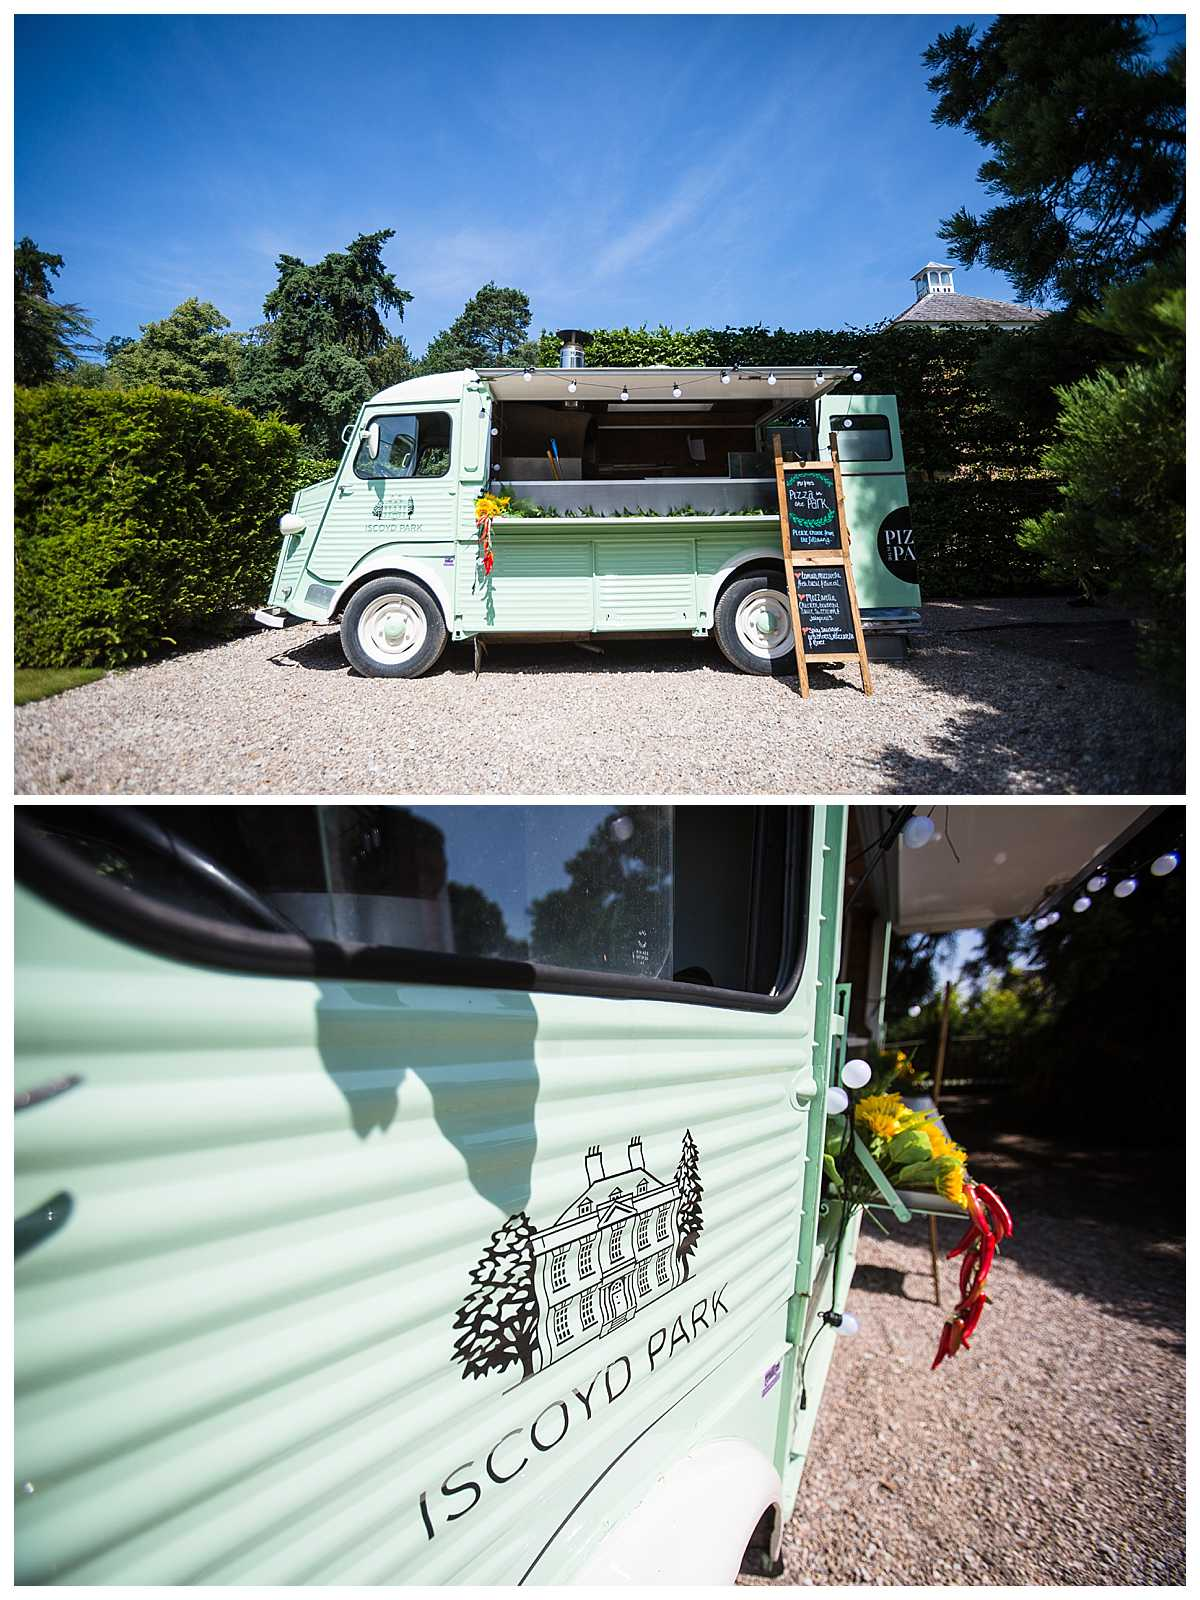 iscoyd park's beautiful pizza van set up for pizza making